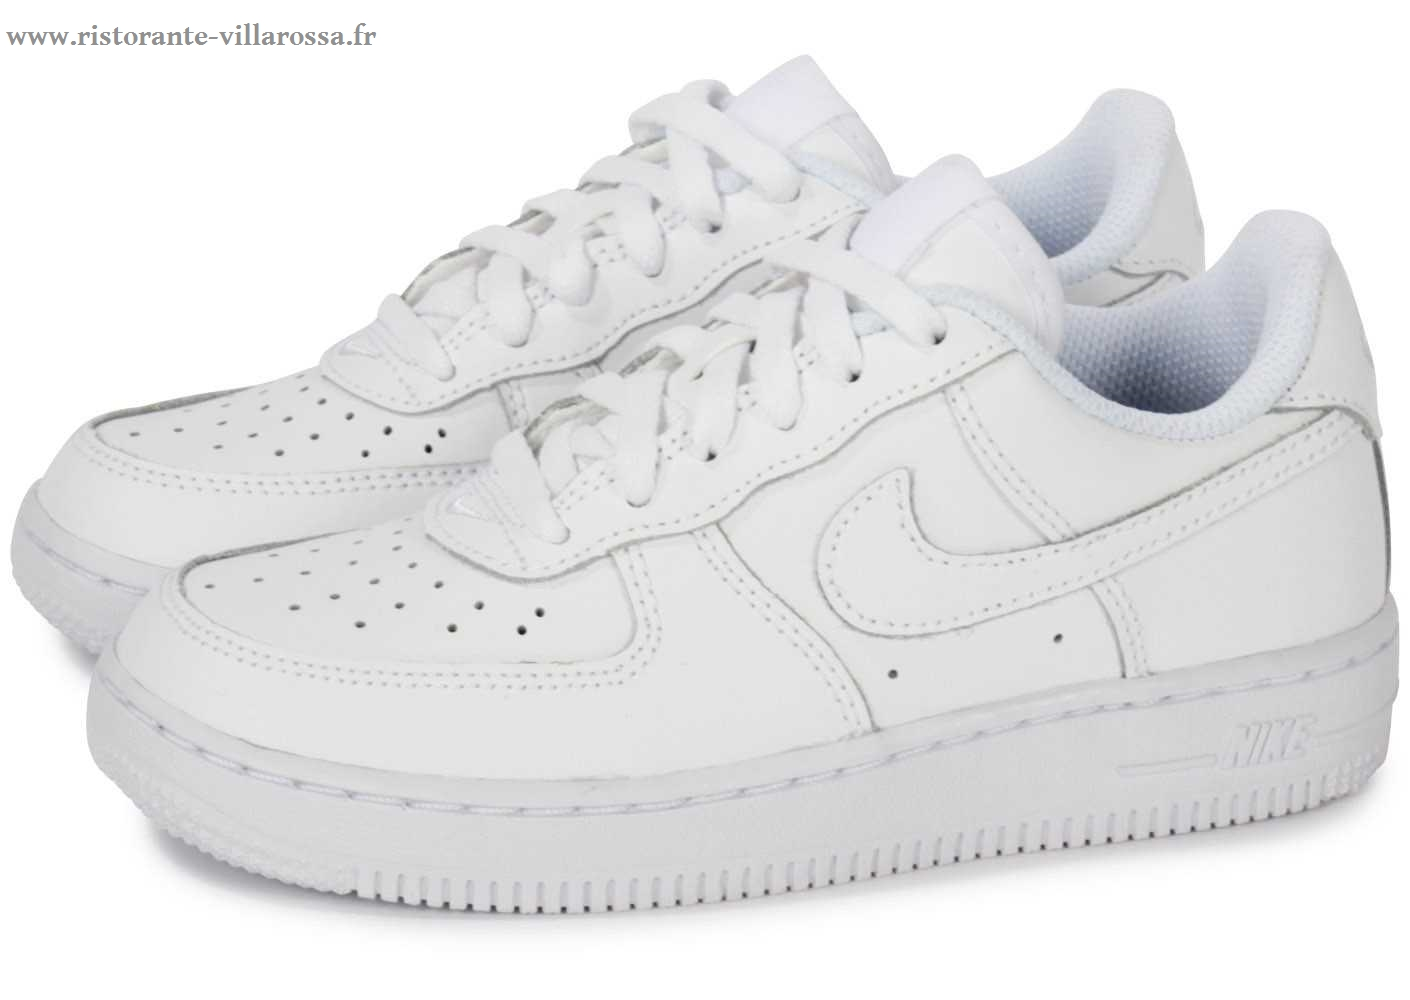 half off 13fbf 7890d Chaussures nike blanche